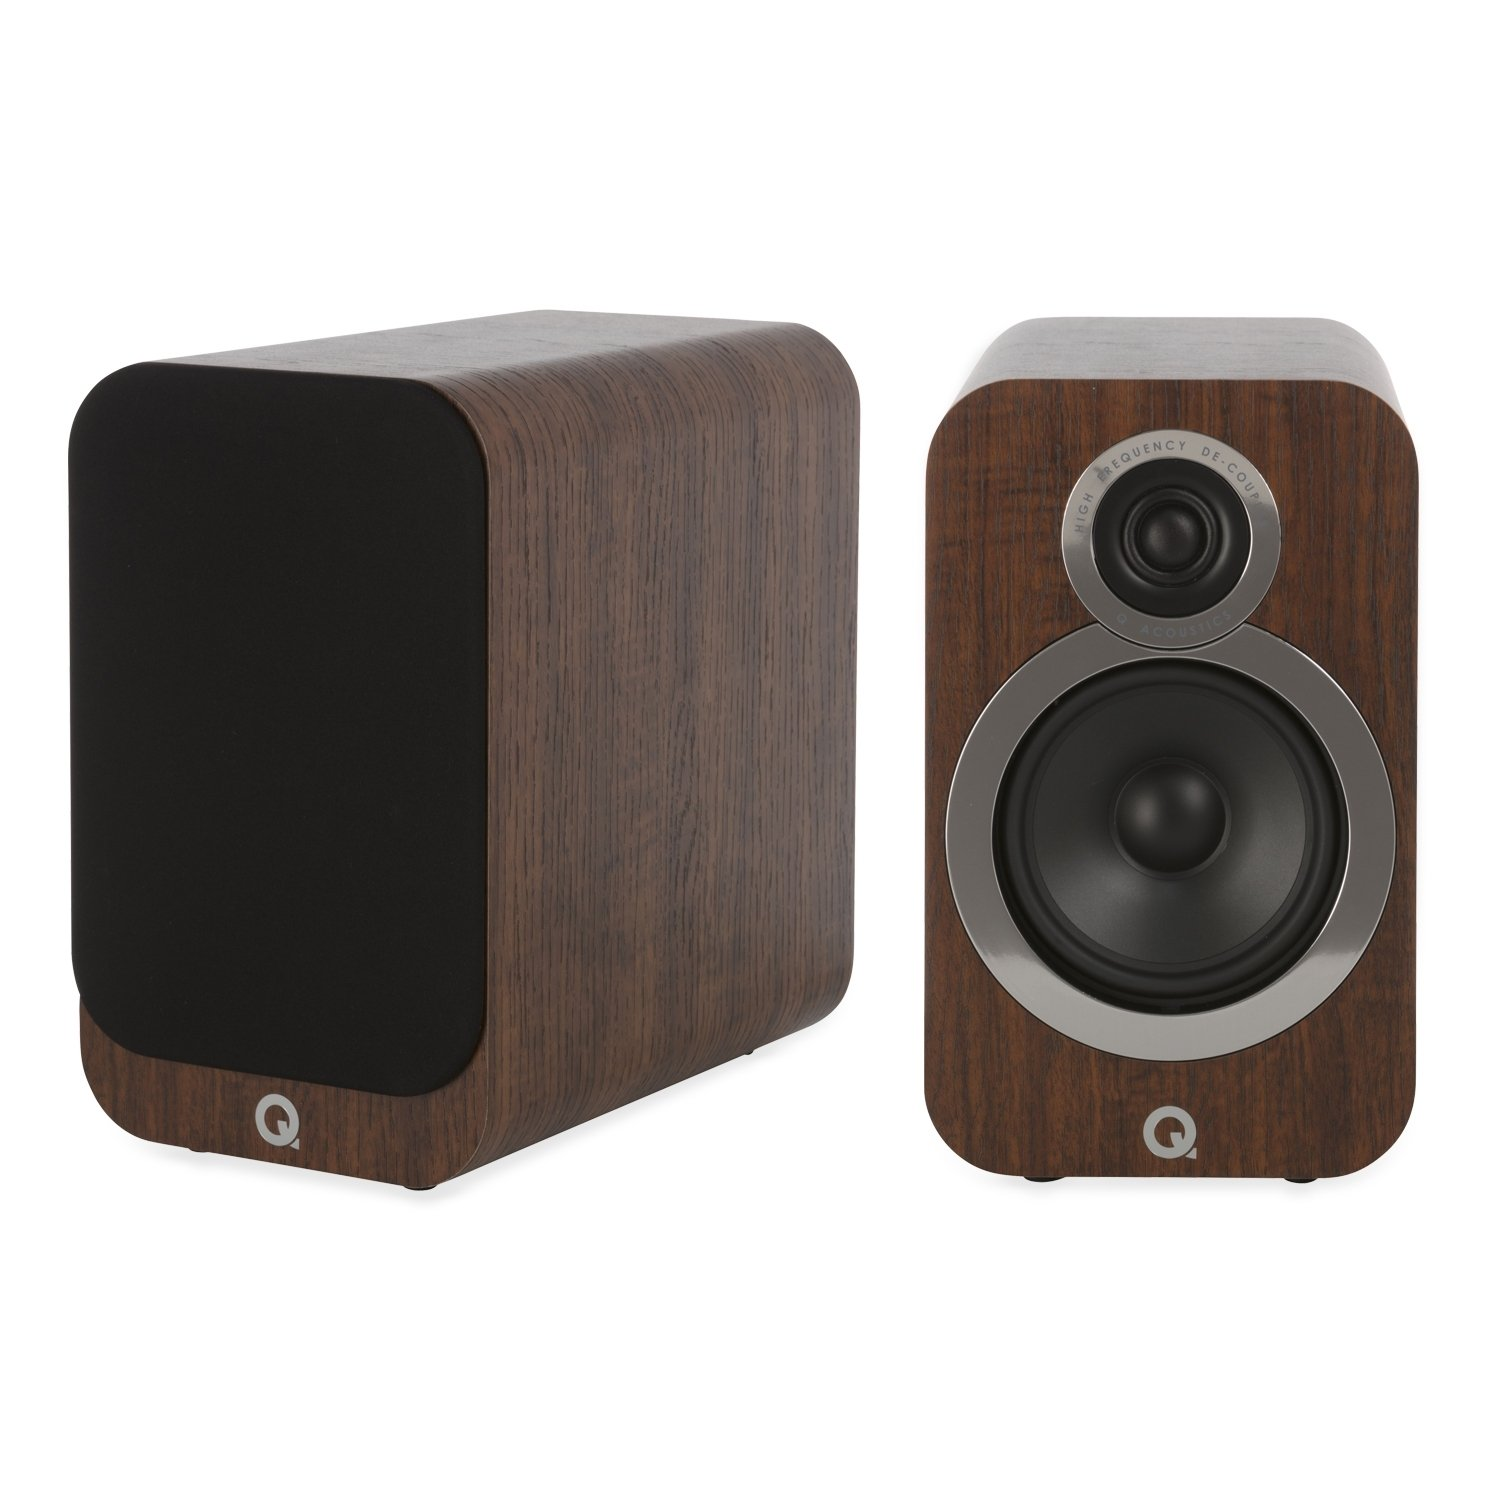 Q Acoustics 3020i Bookshelf Speaker Pair (English Walnut) by Q Acoustics